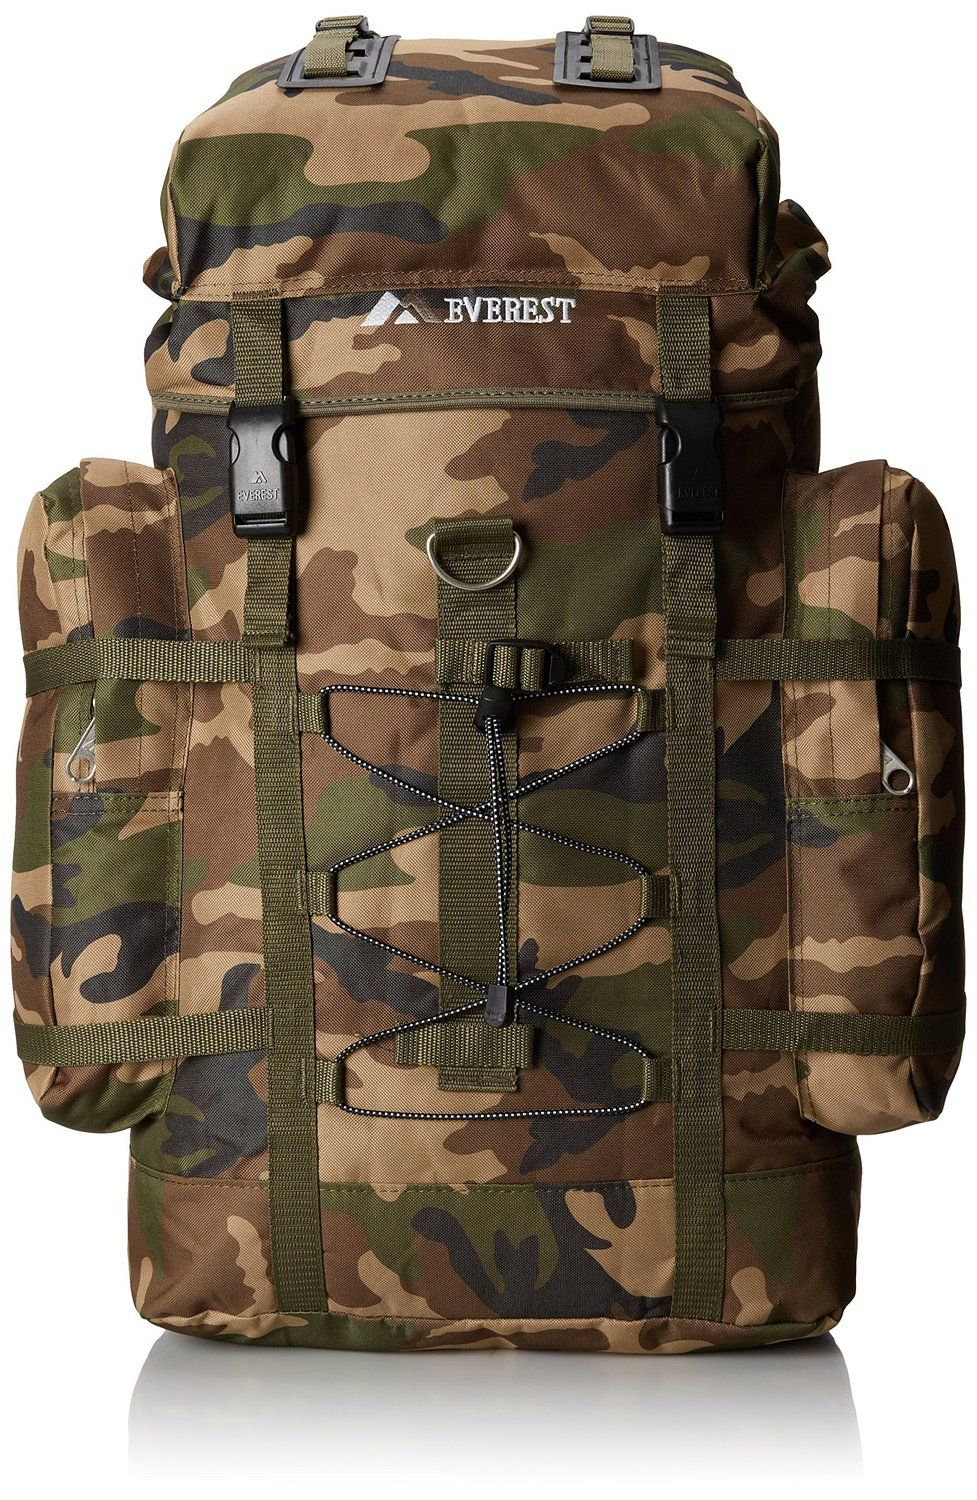 Everest Woodland Camo Hiking Pack >> Huge discounts available  : backpacking packs